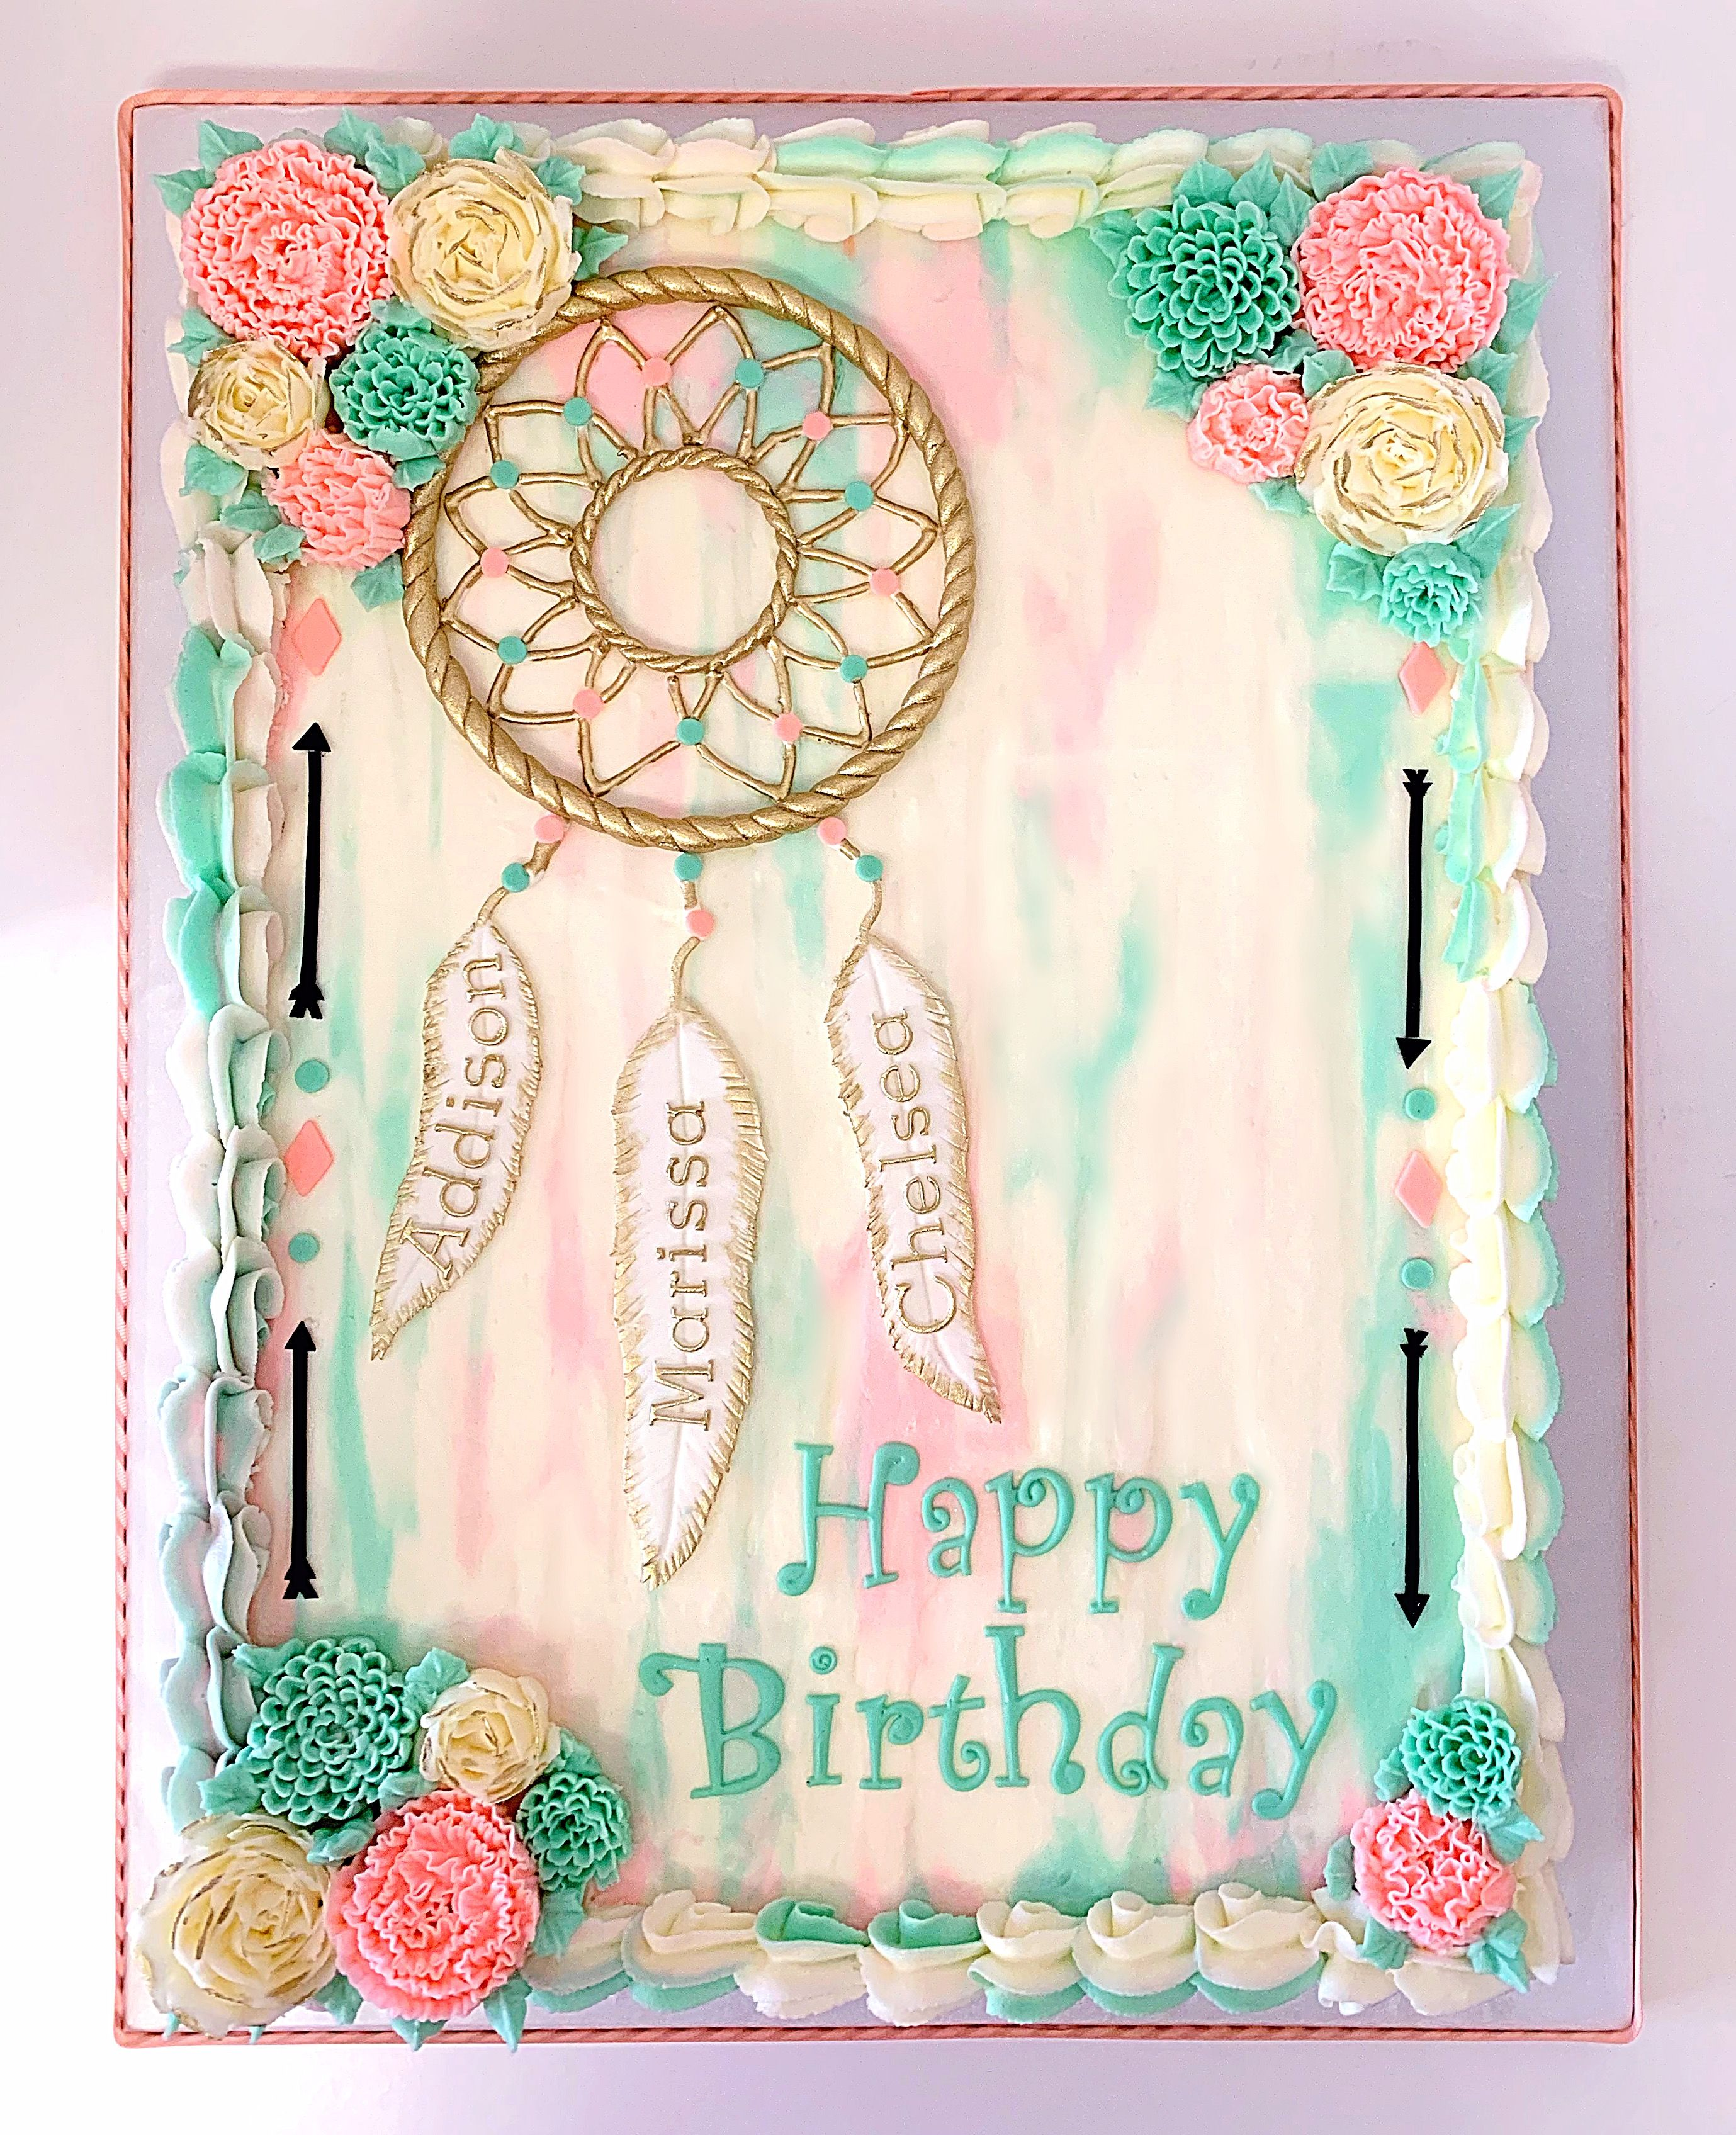 Pin By Sweet Lia's On Sweet Lia's Cakes & Treats